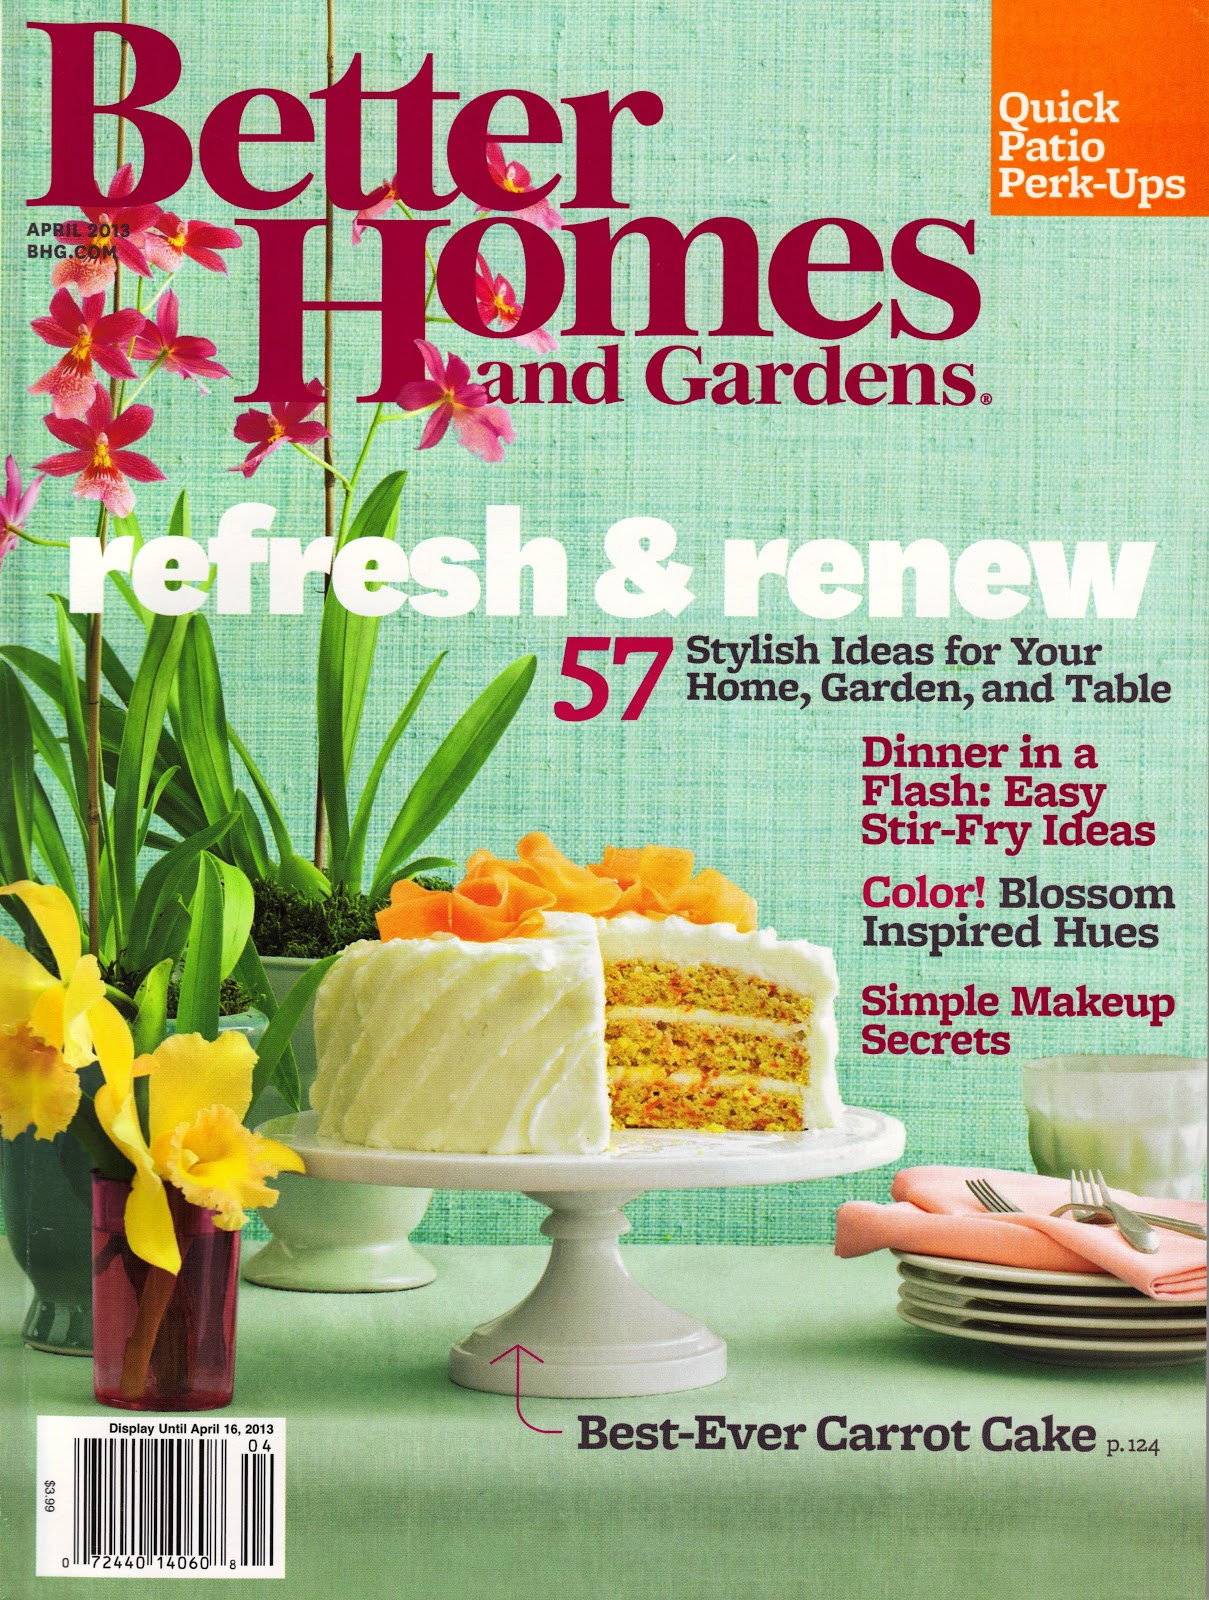 Loft cottage the issue is out Better homes and gardens current issue